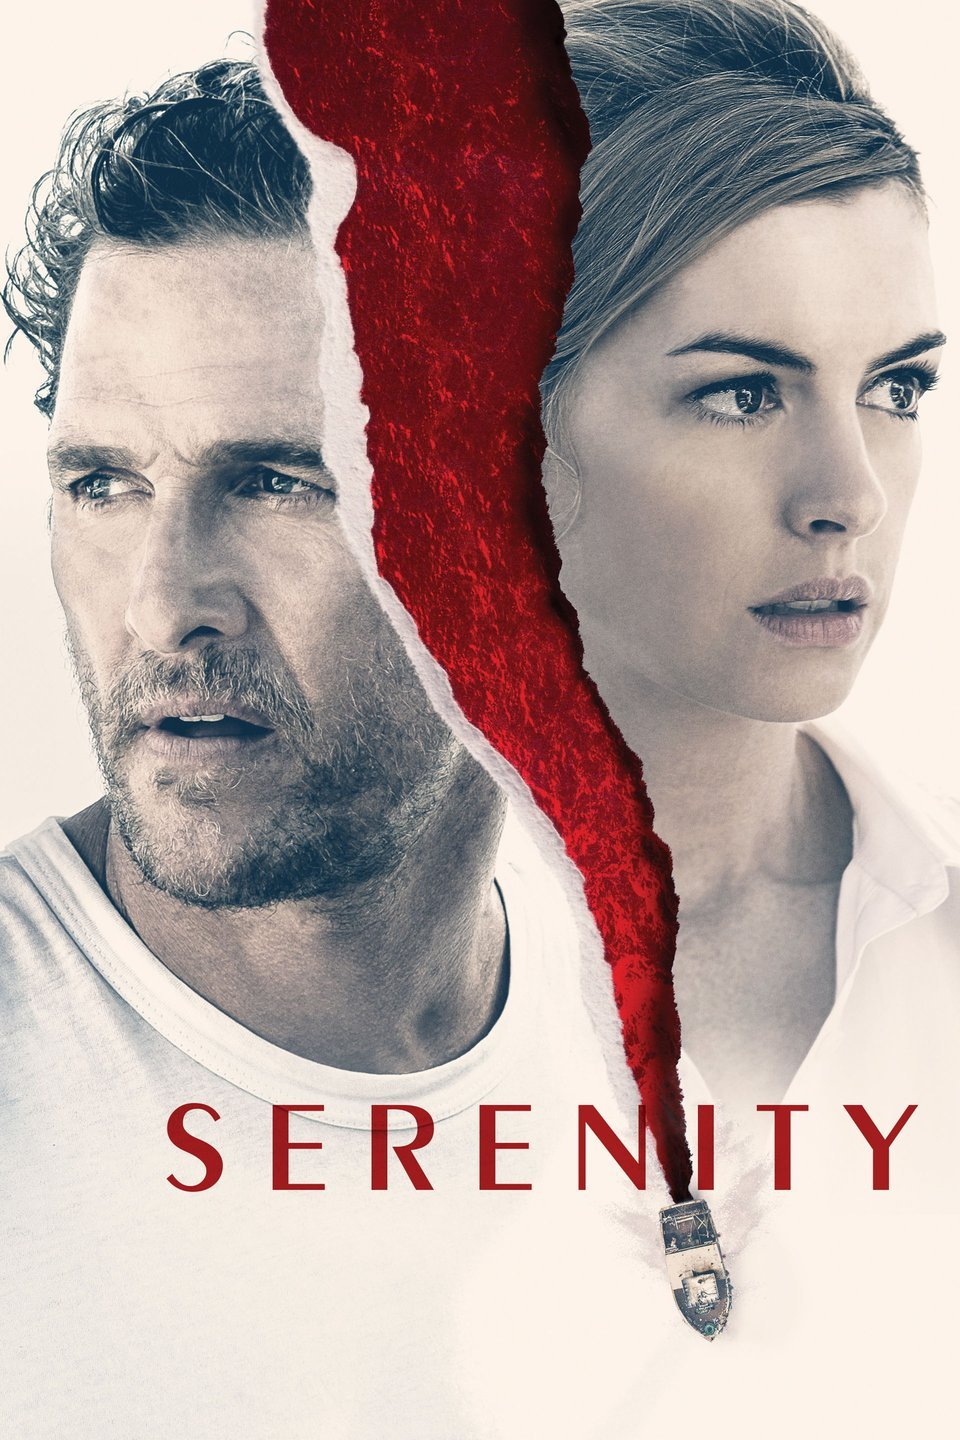 Image result for Serenity 2019